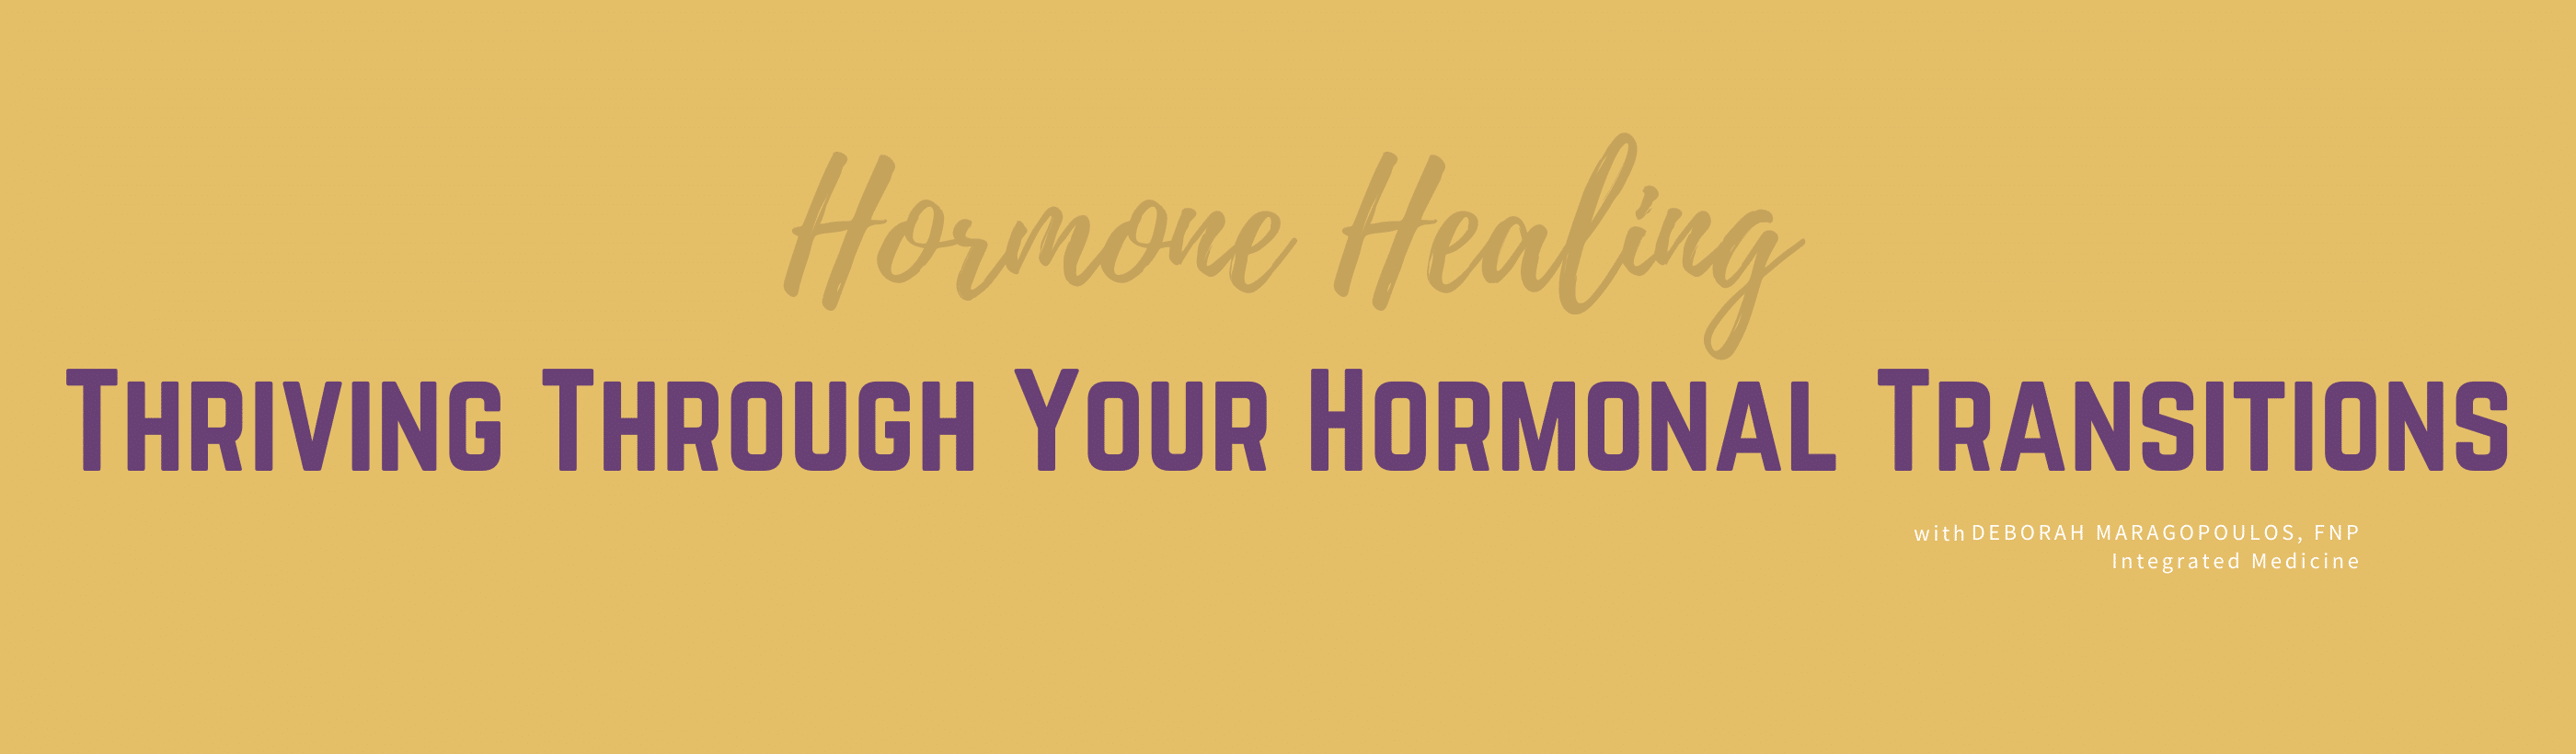 thriving through hormonal transitions